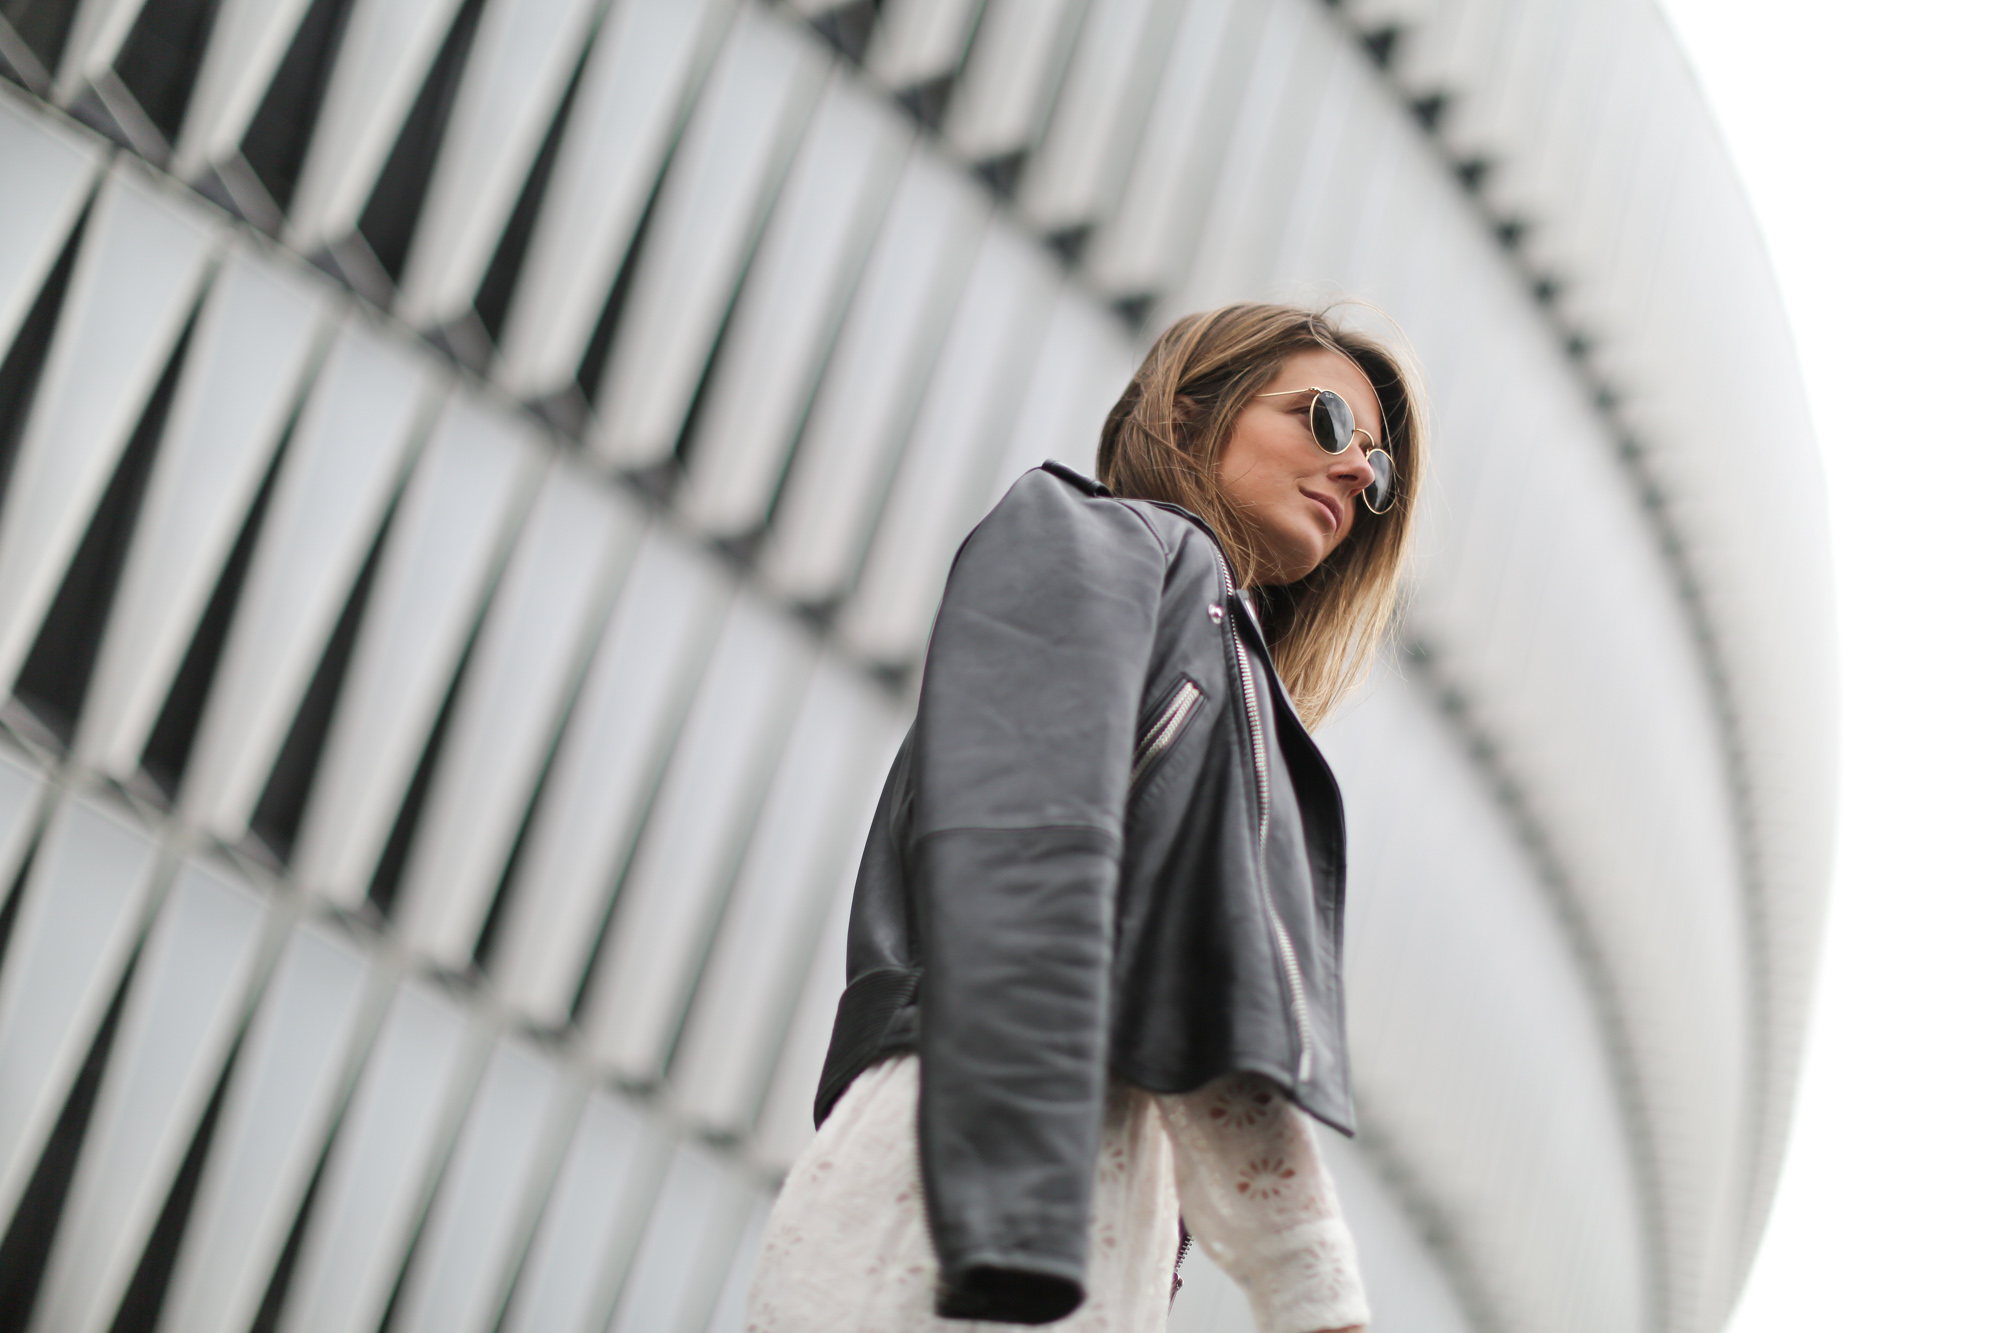 Clochet-streetstyle-mango-premium-leather-biker-jaket-zara-white-embroided-midi-dress-7